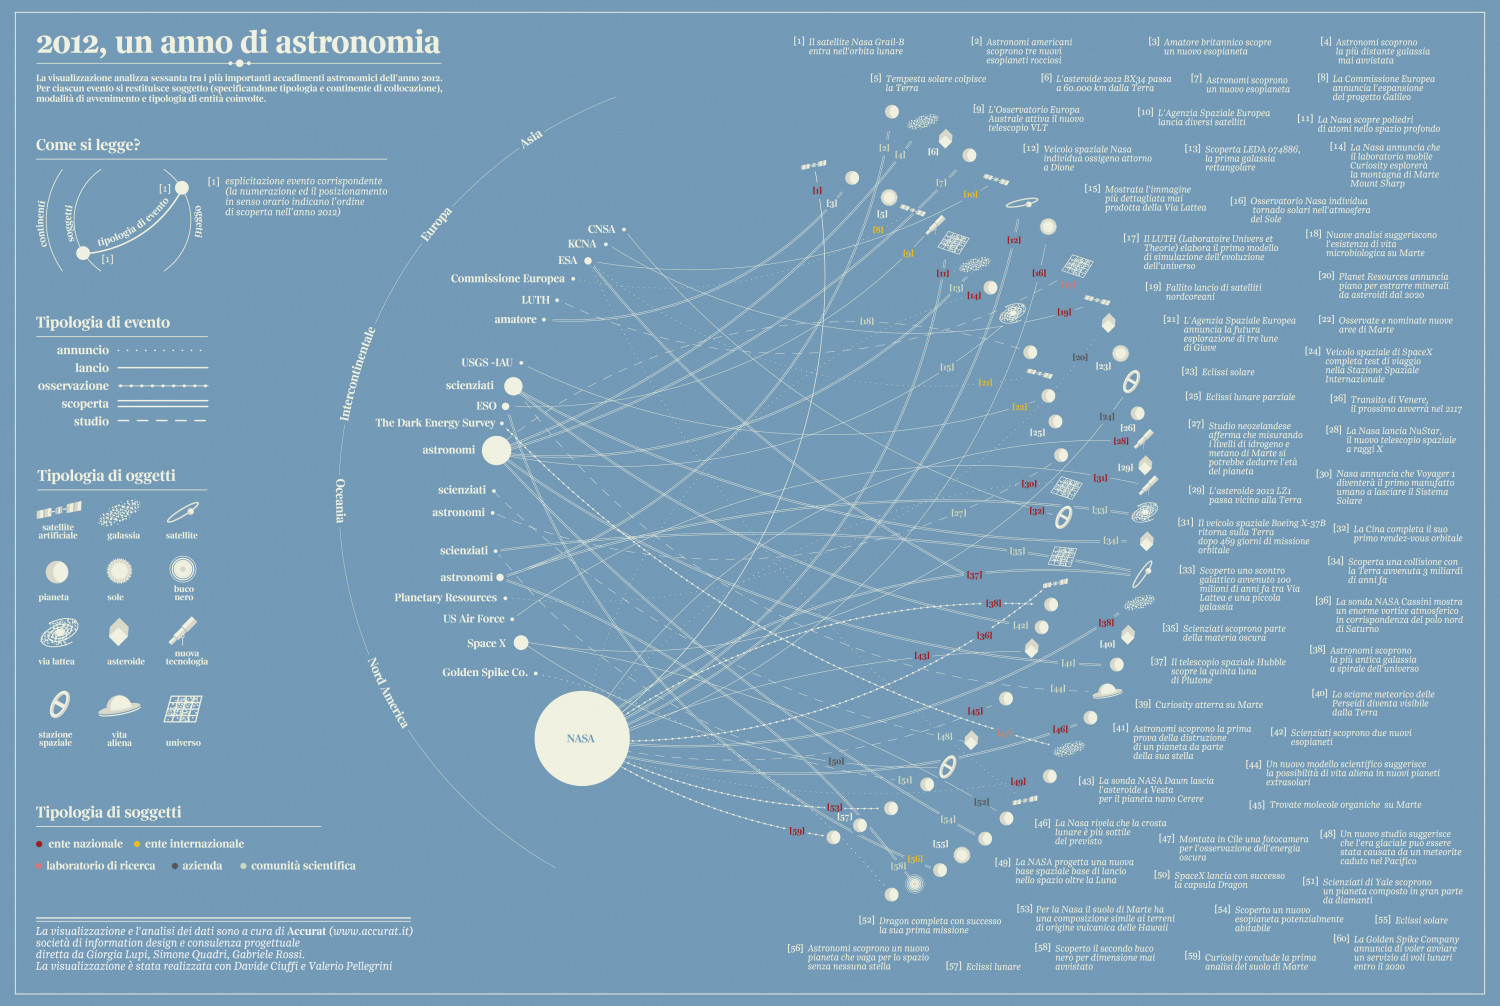 2012: a Year in Astronomy Infographic